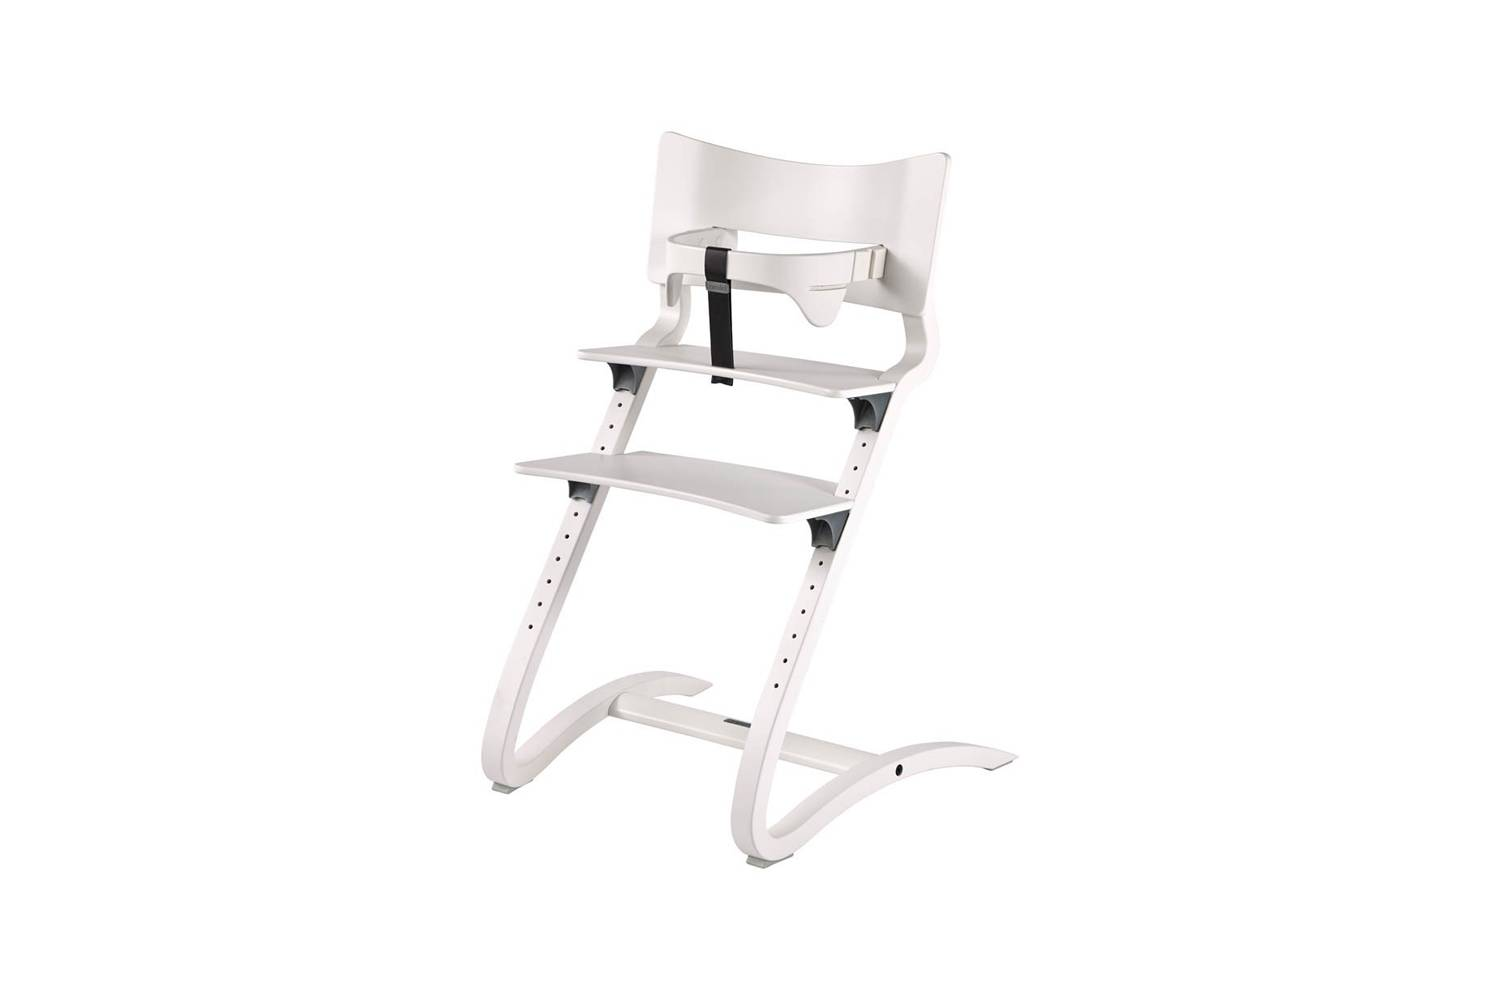 The Leander High Chair in White Satin is $7 at Smallable.